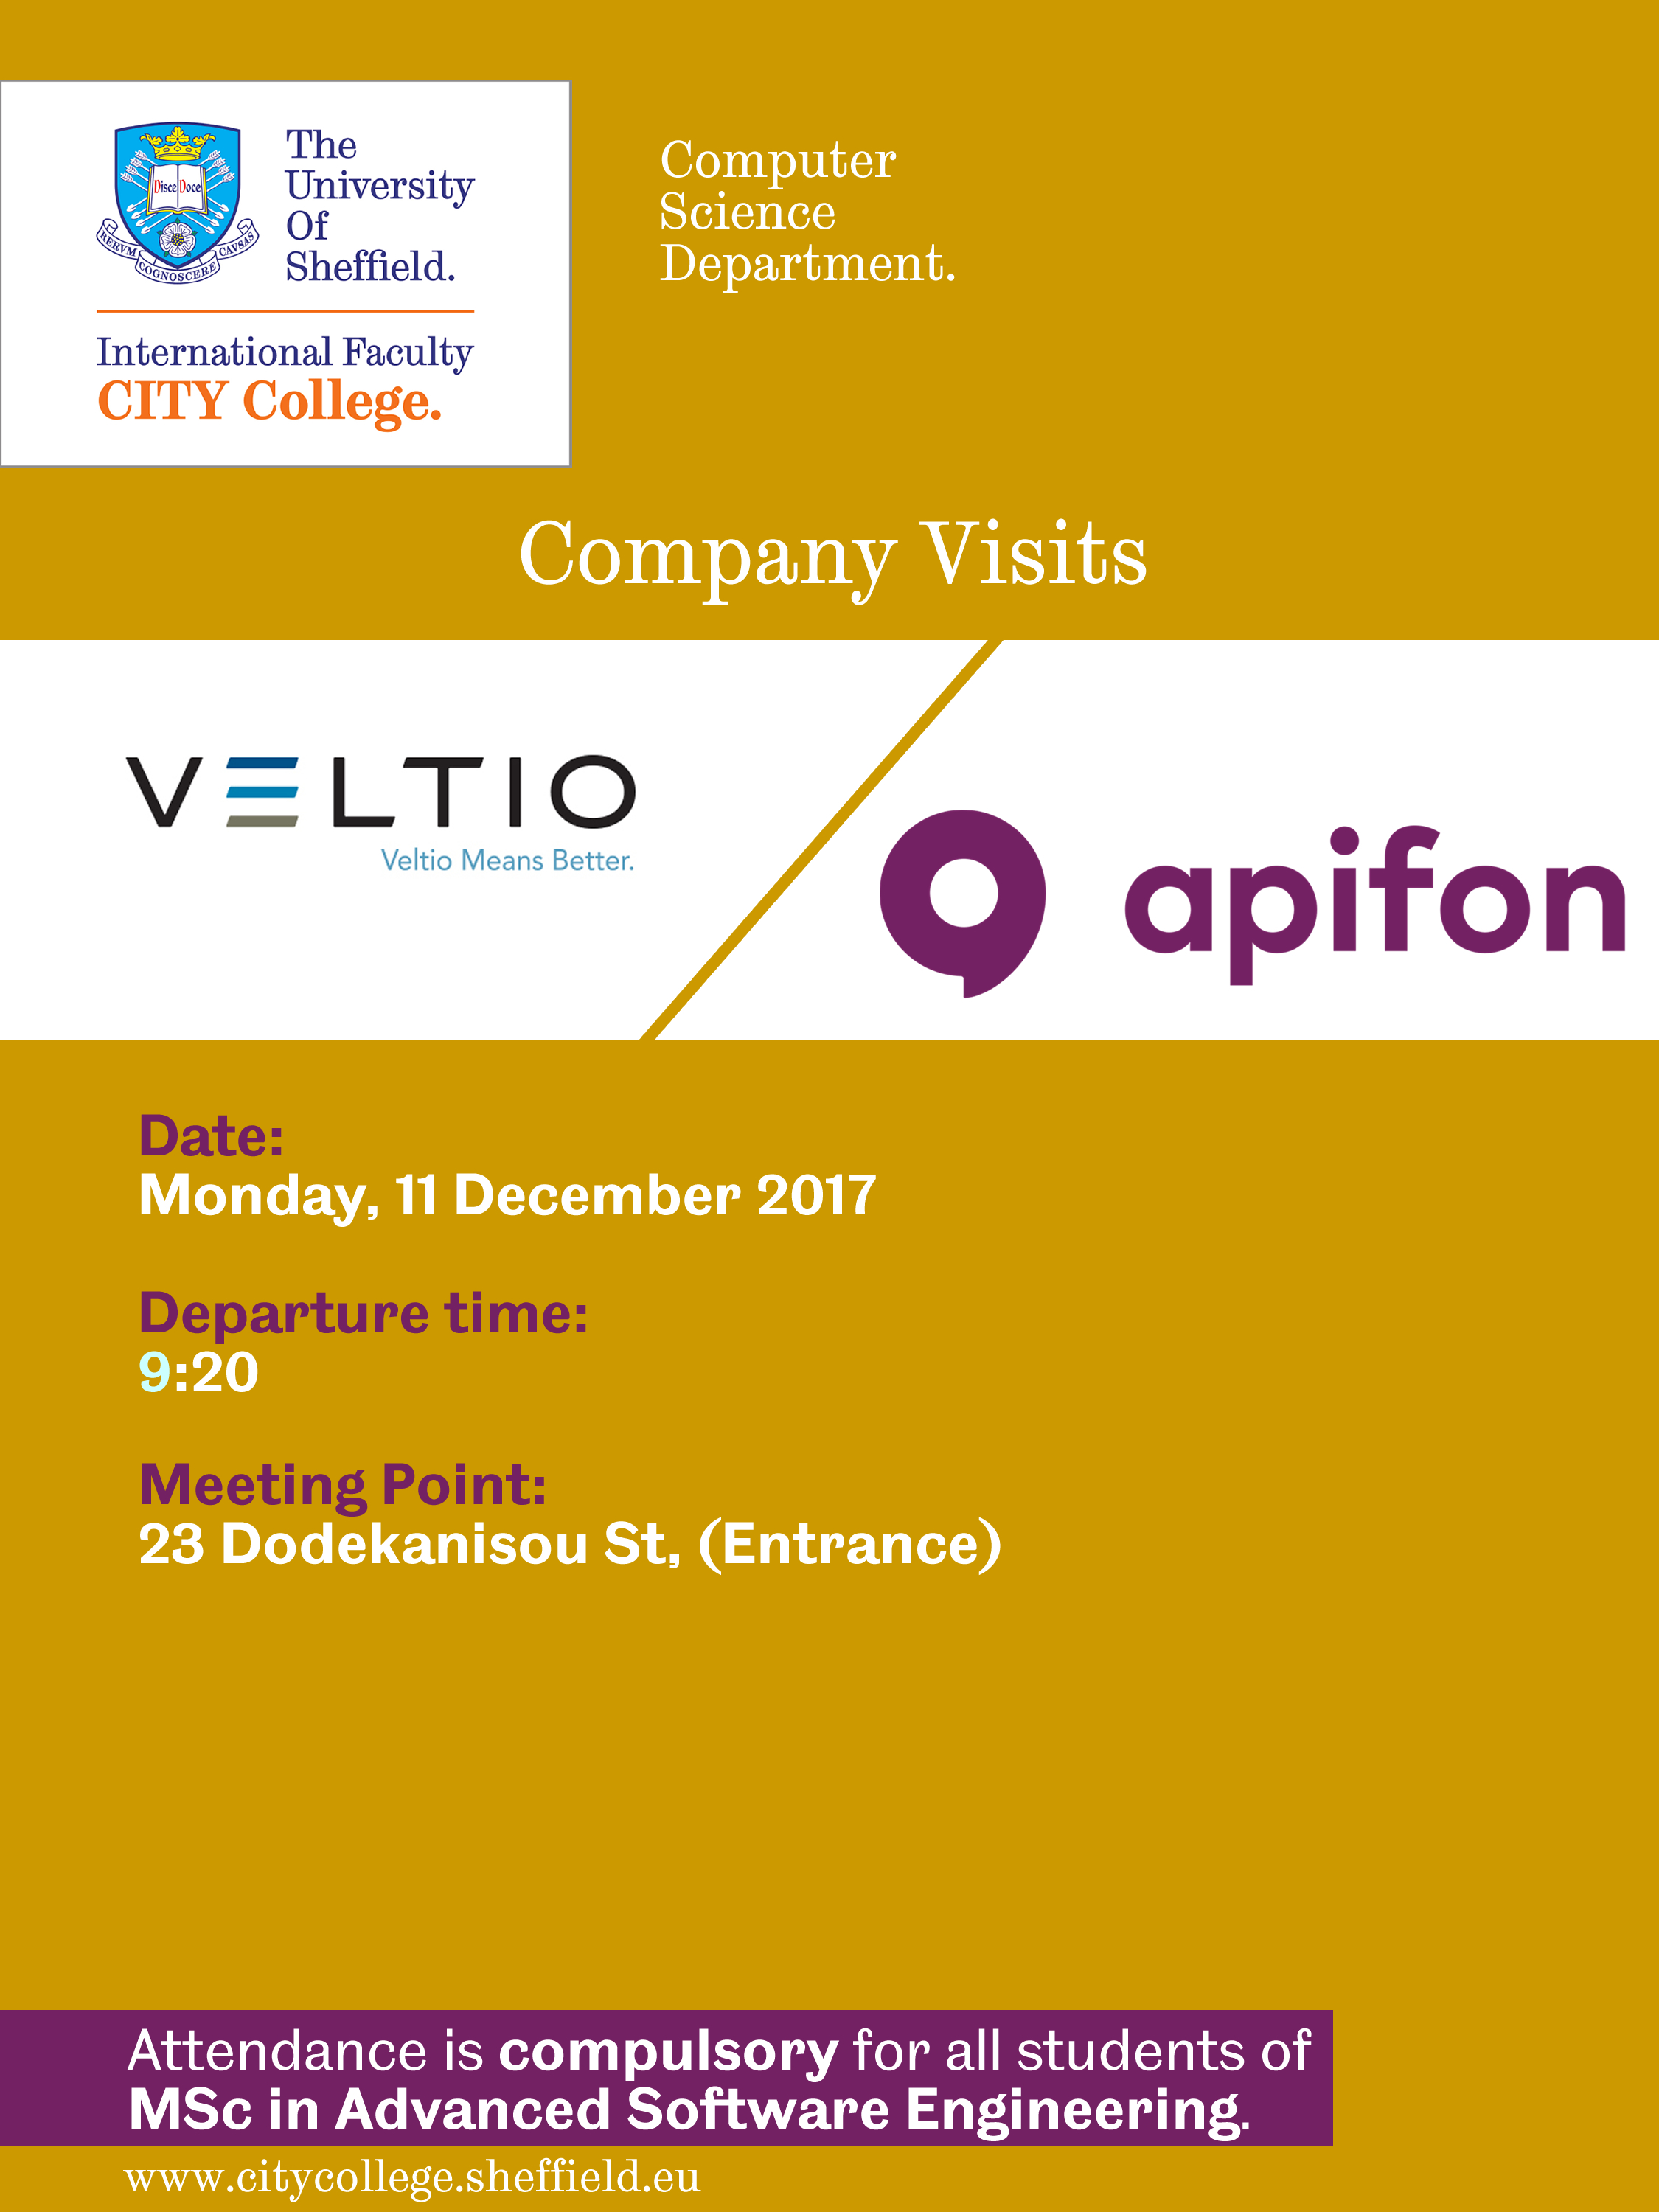 Company Visit to Veltio and Apifon by the International Faculty CITY College Computer Science students